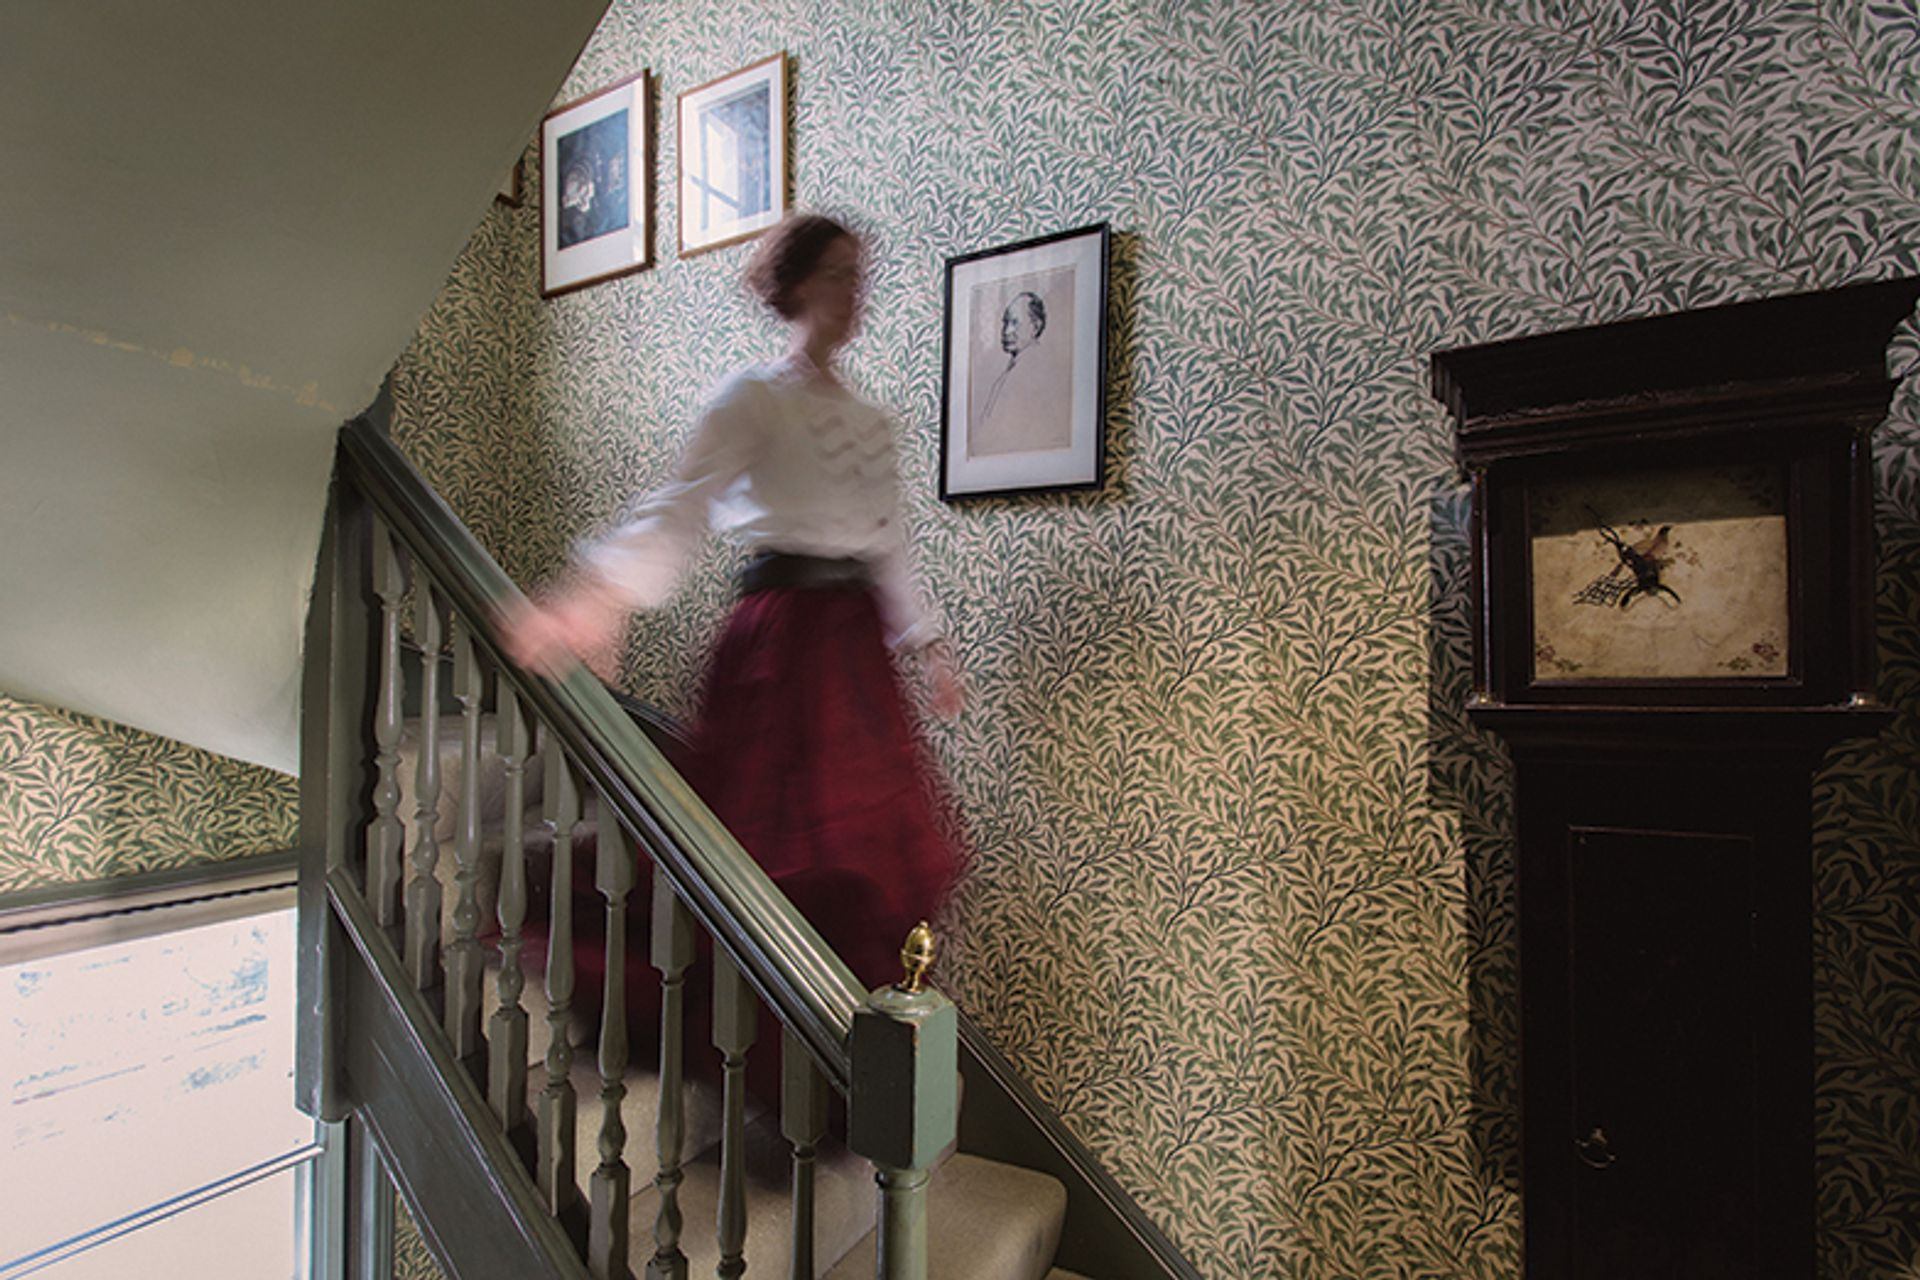 Emery Walker's House, where the stairway area is covered in William Morris 1887 Willow Bough wallpaper Anna Kunst/Courtesy of Emery Walker's House